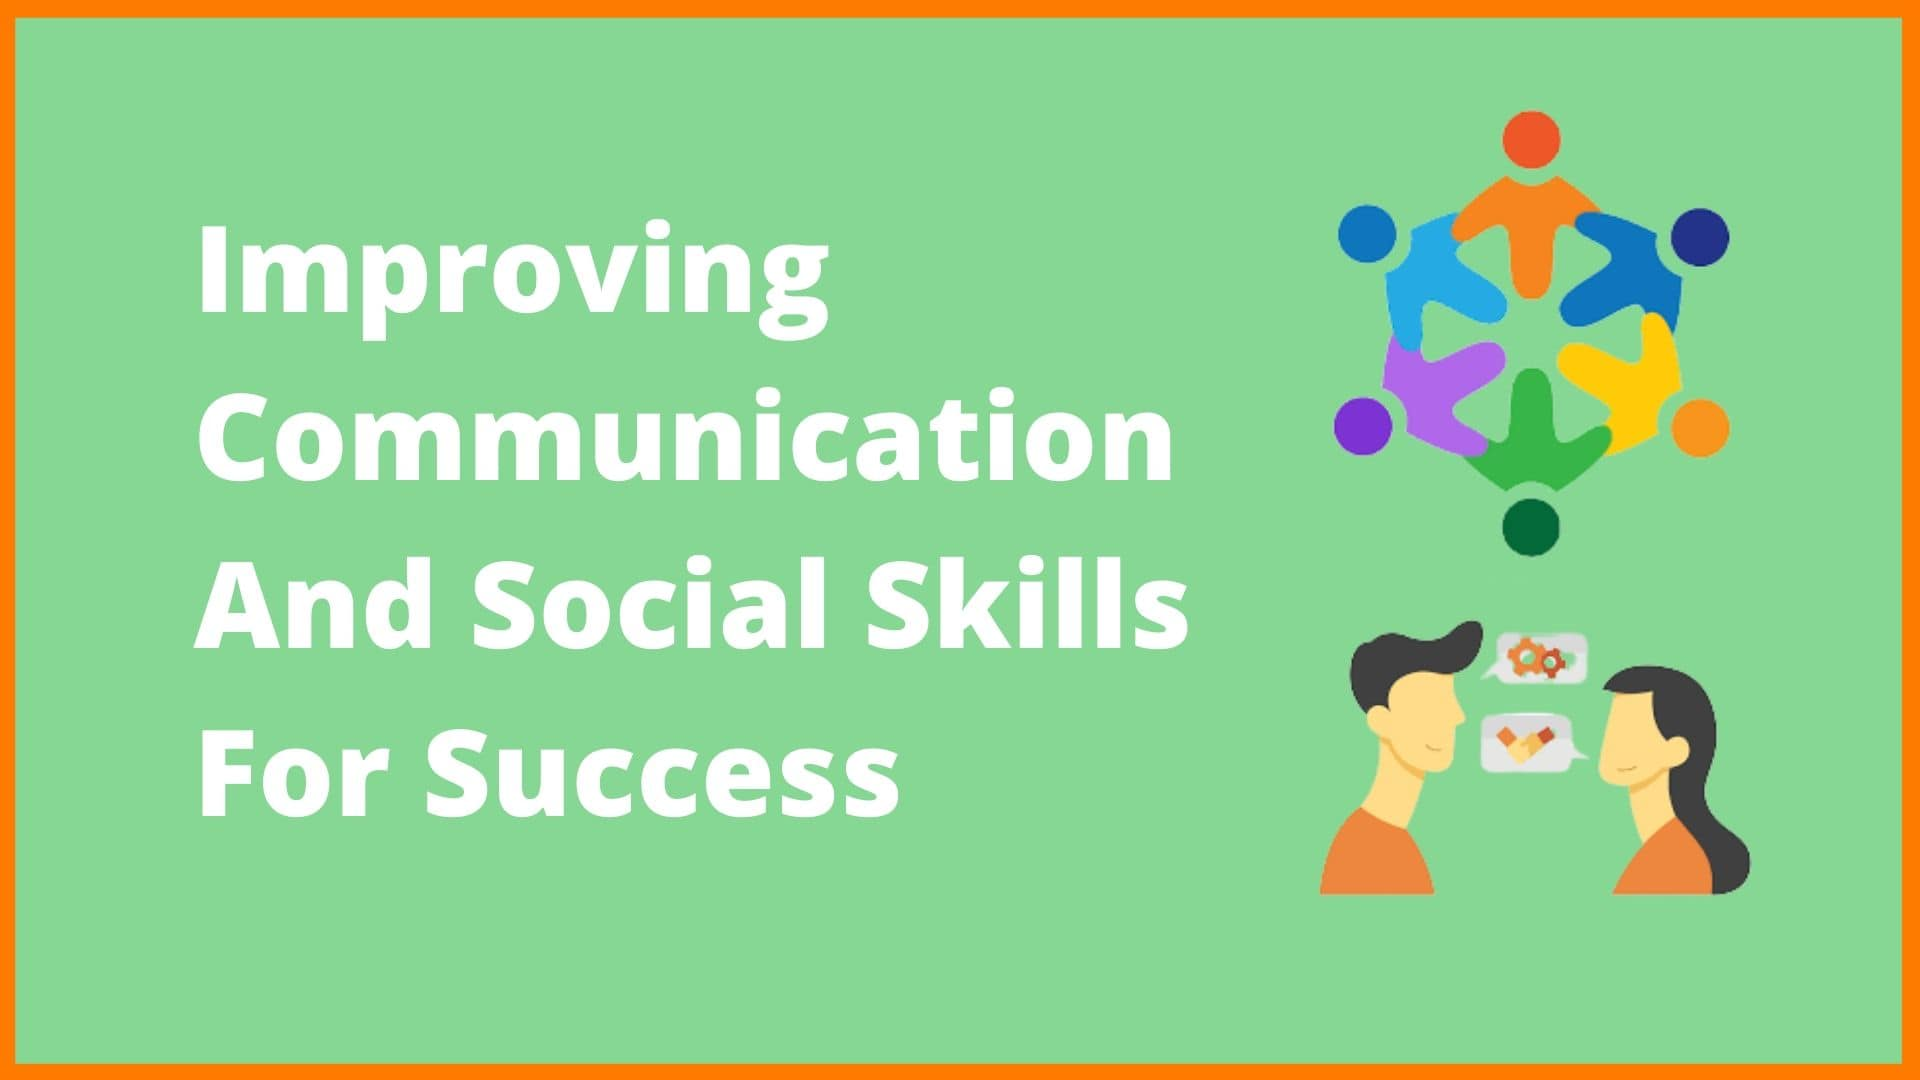 Improving Communication And Social Skills For Success